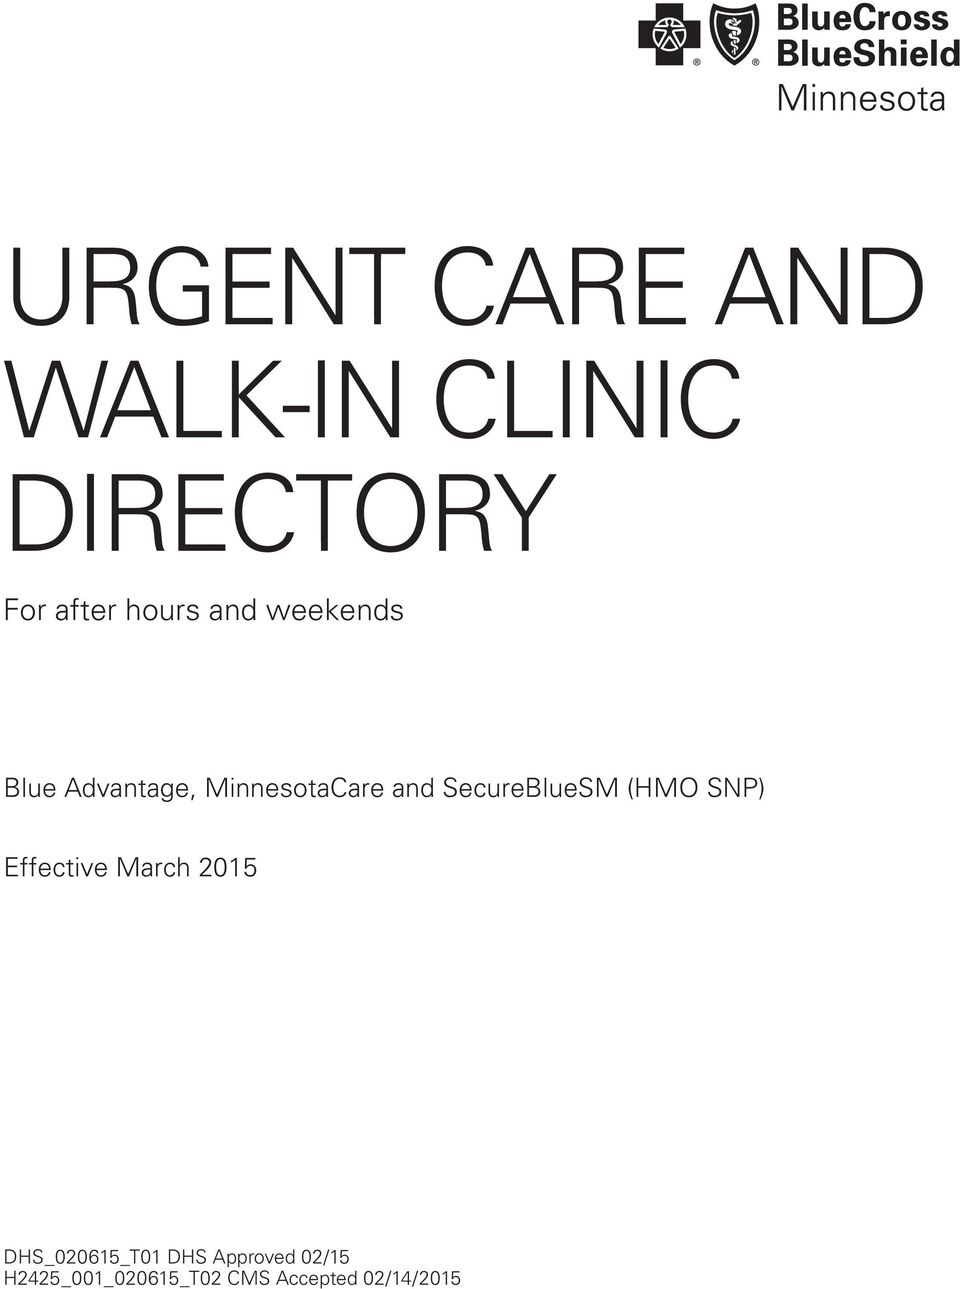 URGENT CARE AND WALK-IN CLINIC DIRECTORY - PDF